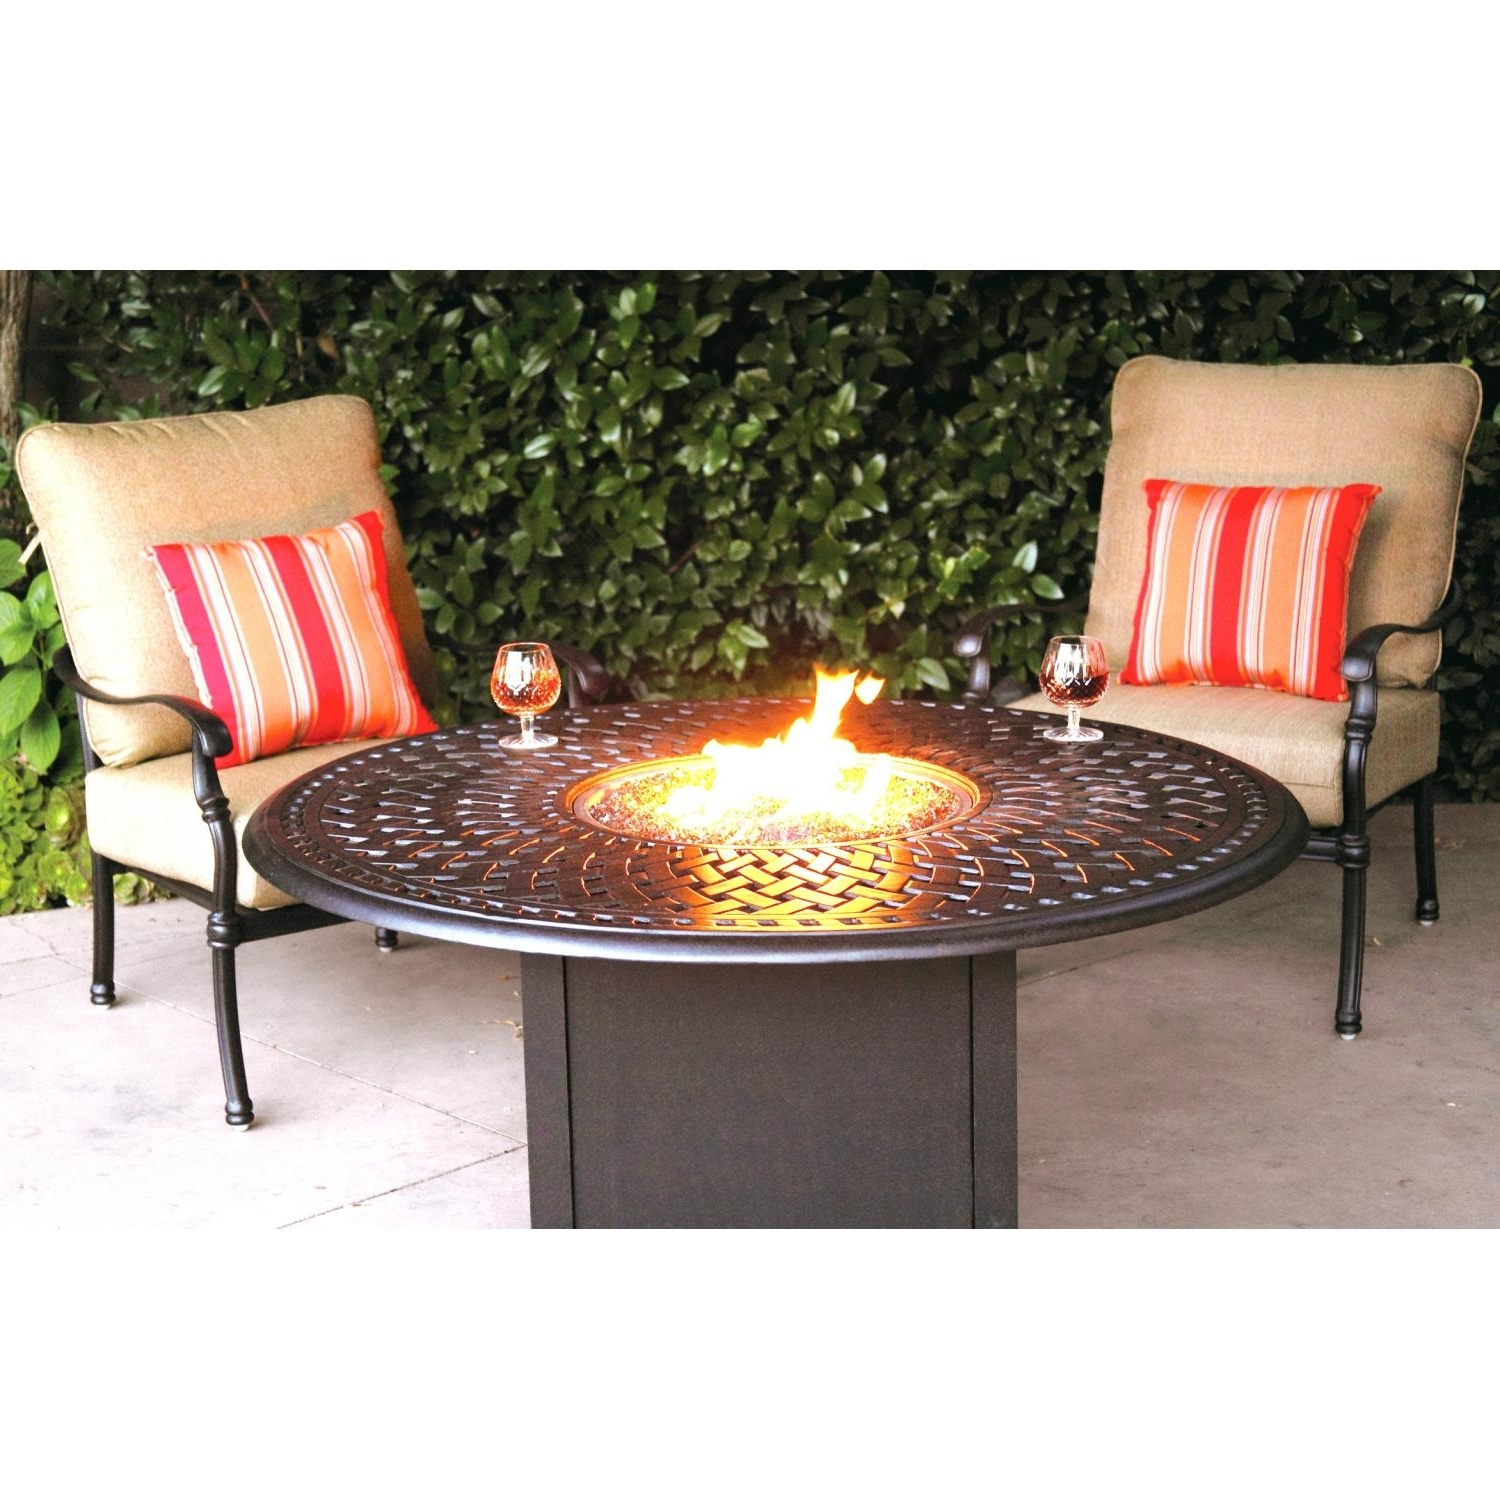 Most Popular Patio Conversation Sets With Gas Fire Pit Pertaining To Darlee Florence 3 Piece Aluminum Patio Fire Pit Seating Set (View 12 of 20)